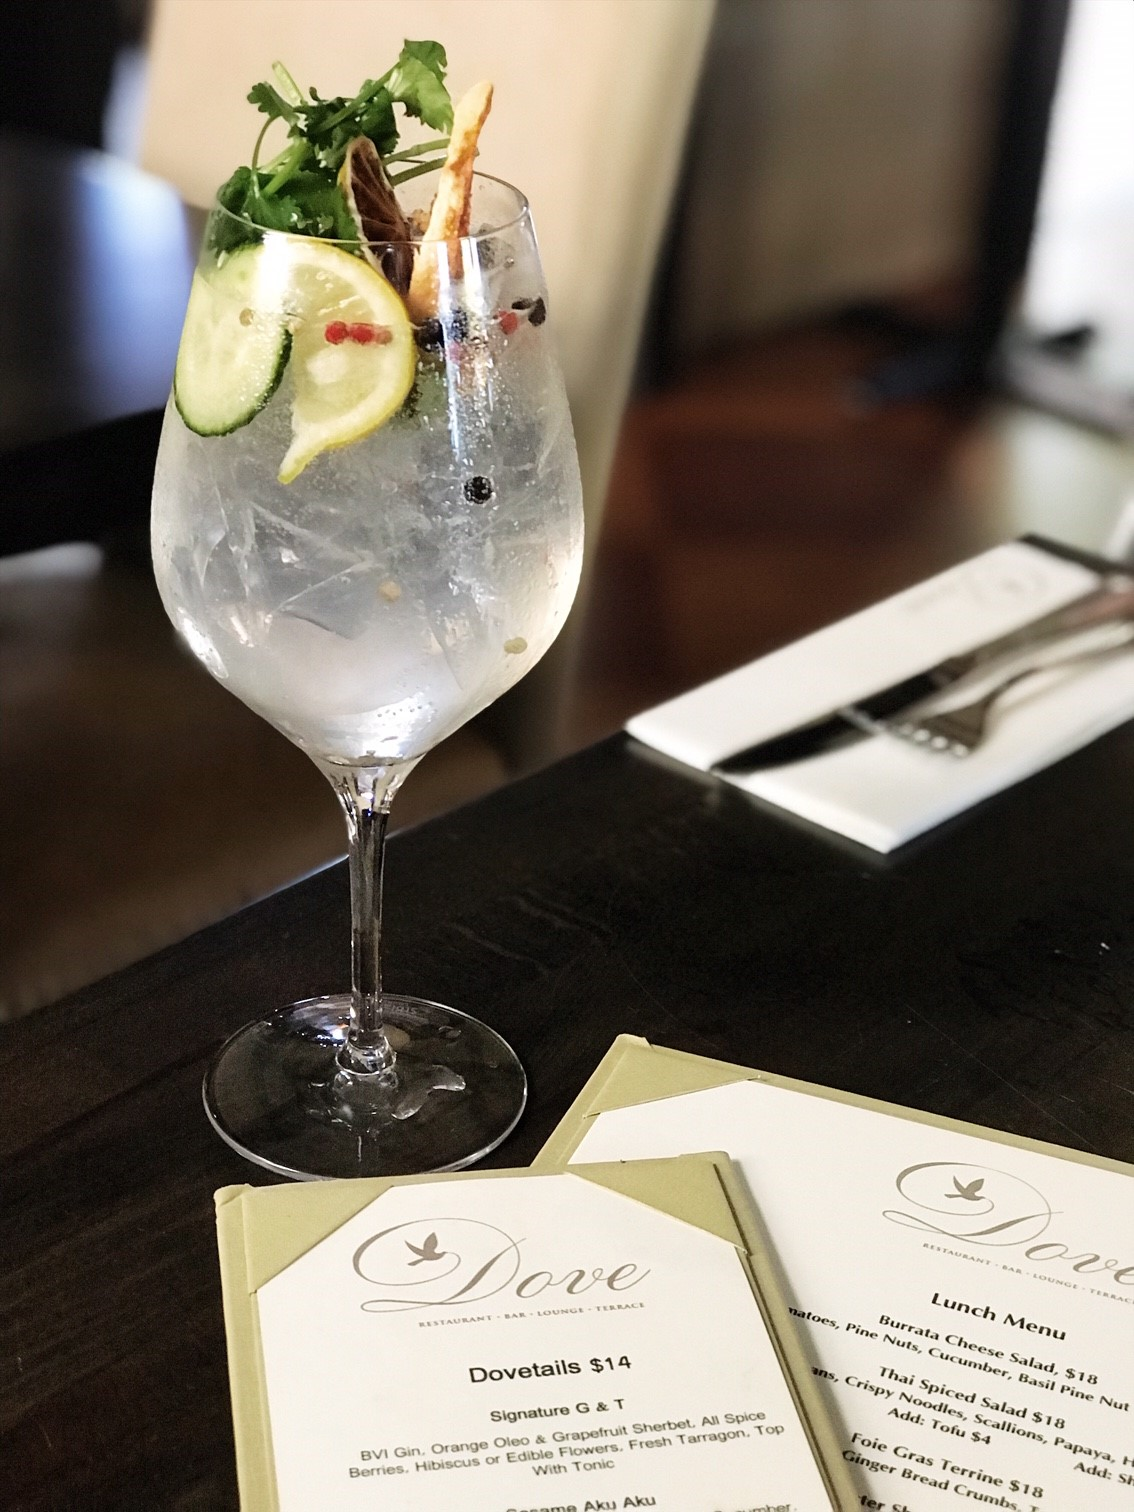 British Virgin Islands Restaurant Guide - Where to eat when visiting the BVI. Enjoying a G&T at The Dove Restaurant